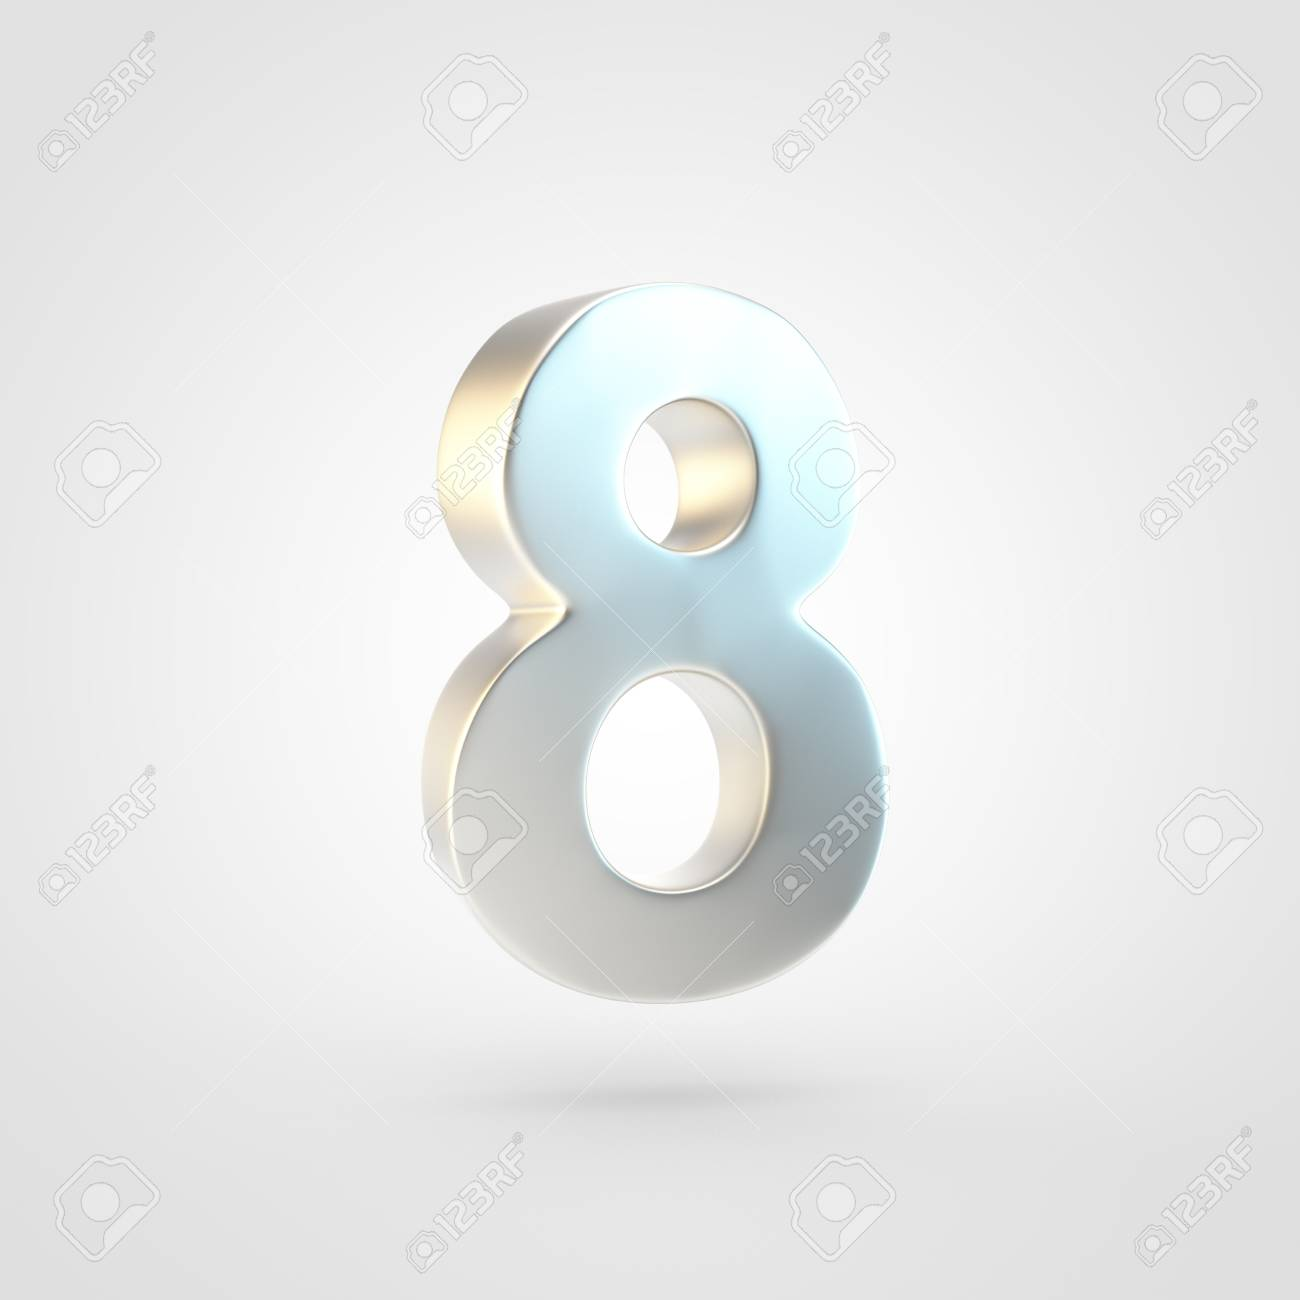 Silver Number 8 3D Rendering Of Matted Golden Font Isolated 1300x1300